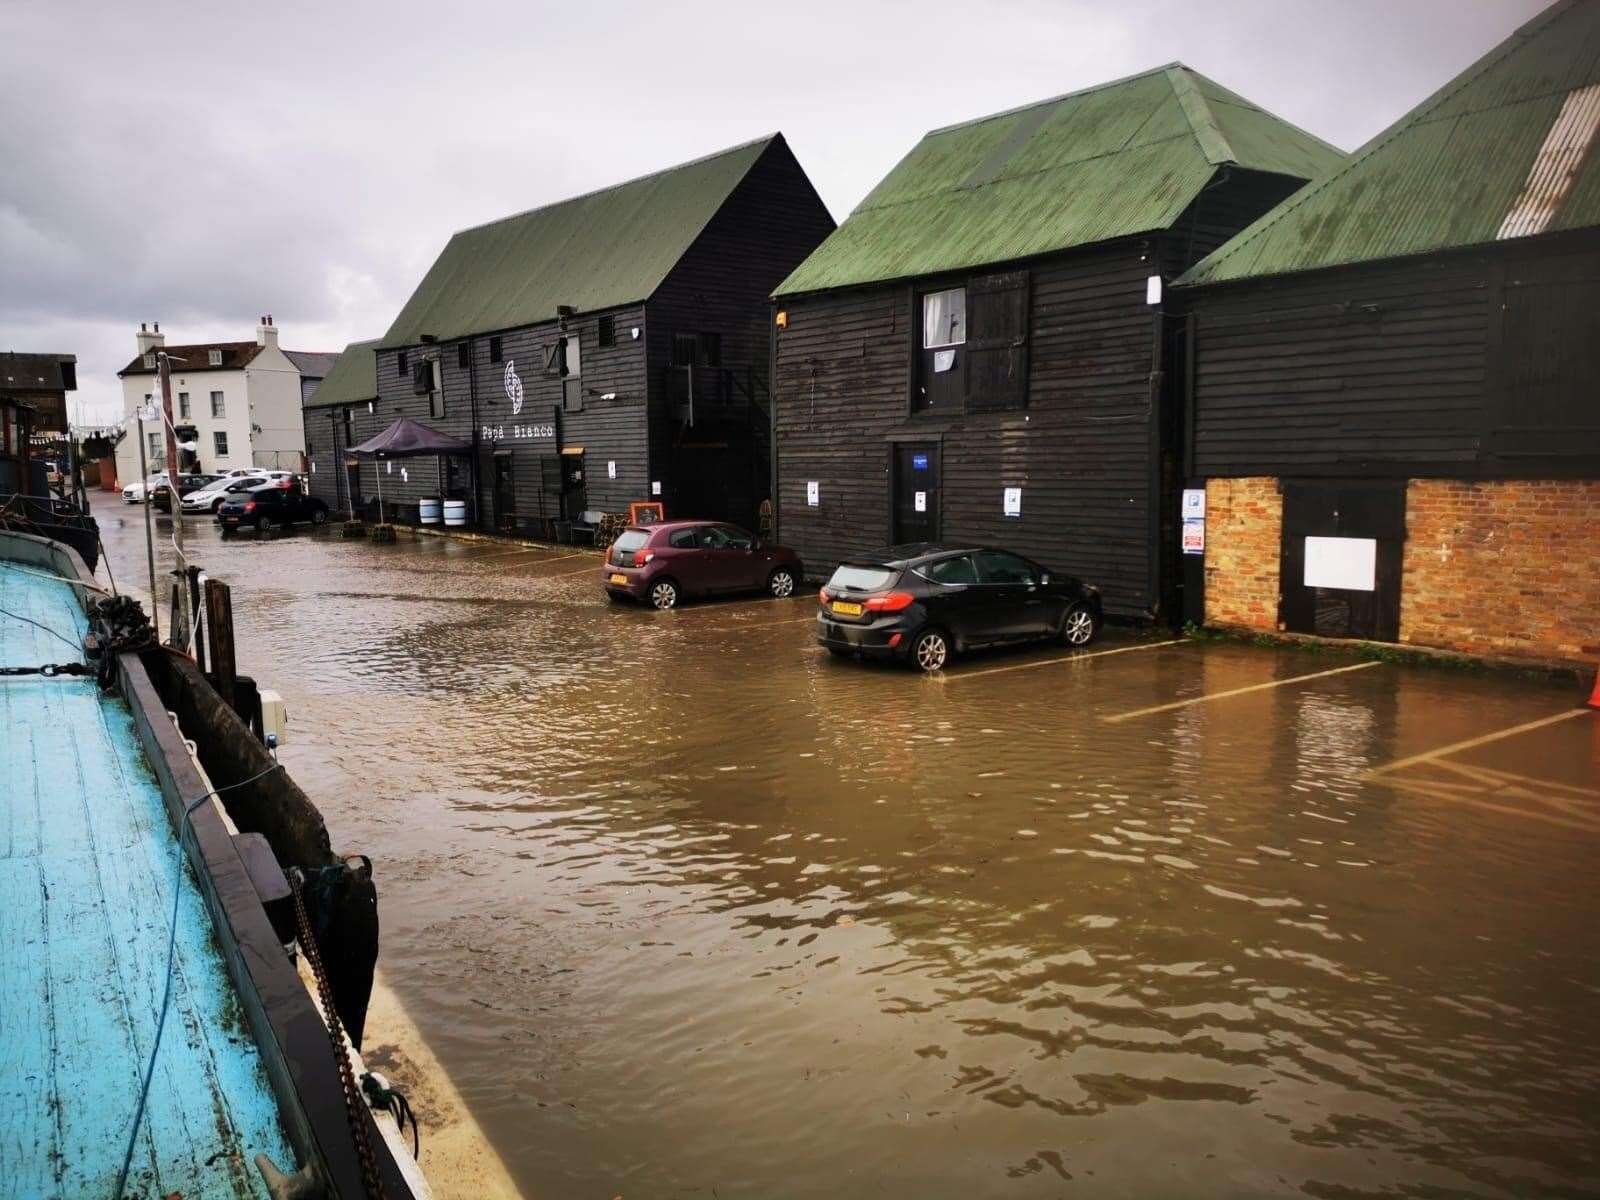 A photo taken earlier this afternoon shows water creeping up to cars and buildings by Faversham Creek. Picture: @GretaBarge1892/Twitter